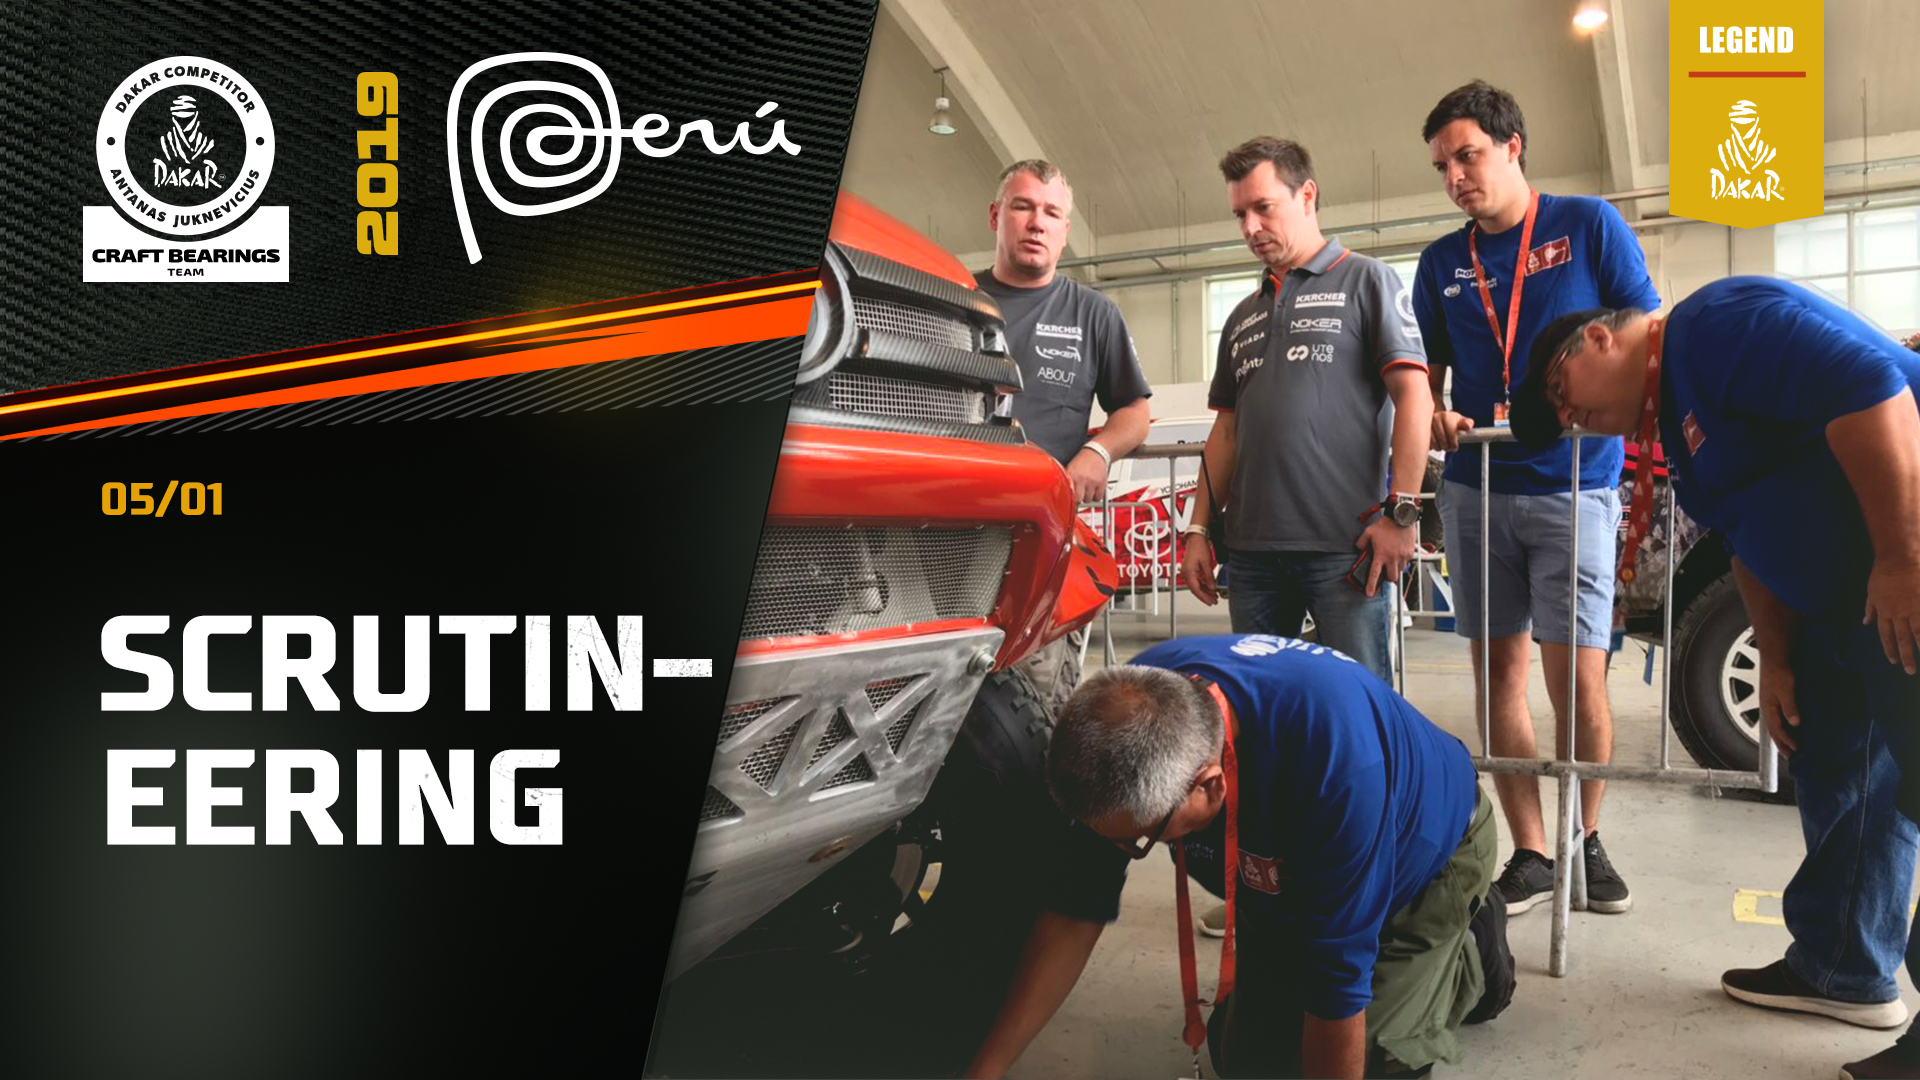 Dakar Rally 2019. Technical Scrutineering